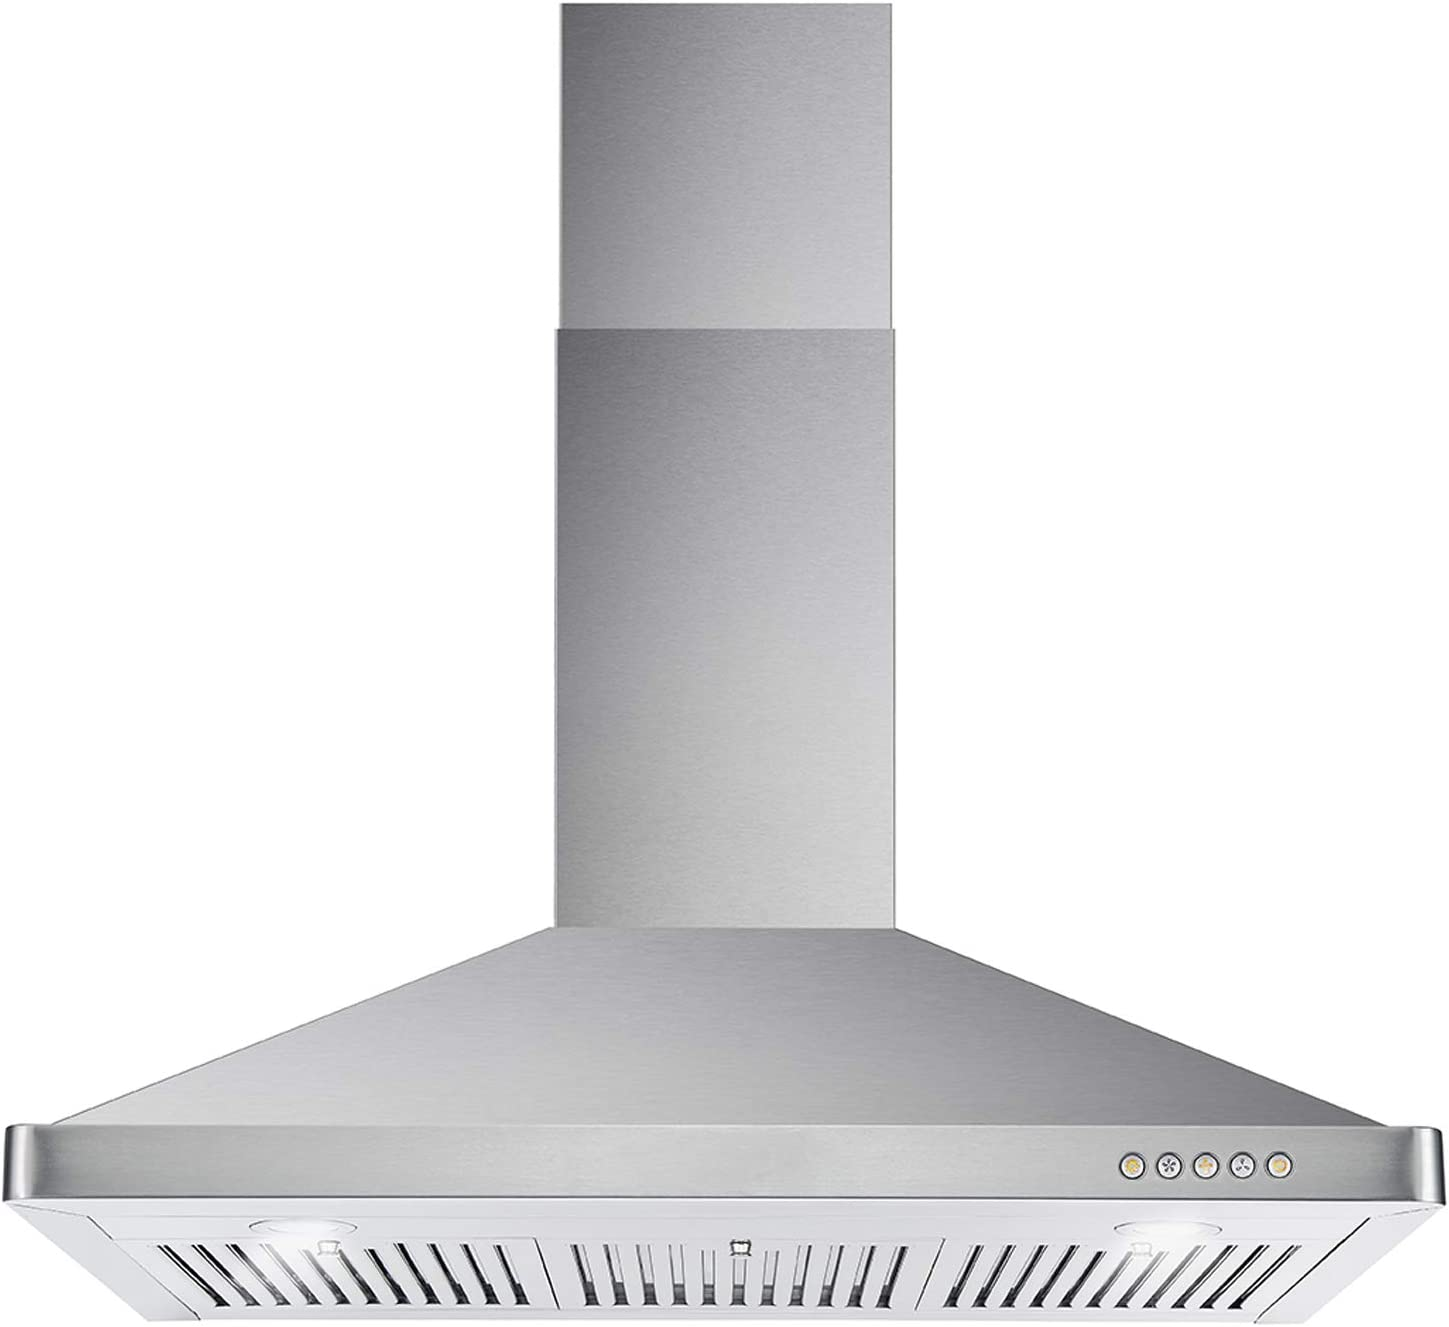 Cosmo 63190 Wall Mount Range Hood with Ductless Convertible Duct, Kitchen Chimney-Style Over Stove Vent, 3 Speed Exhaust Fan, Permanent Filters, LED Lights in Stainless Steel, 36 inch